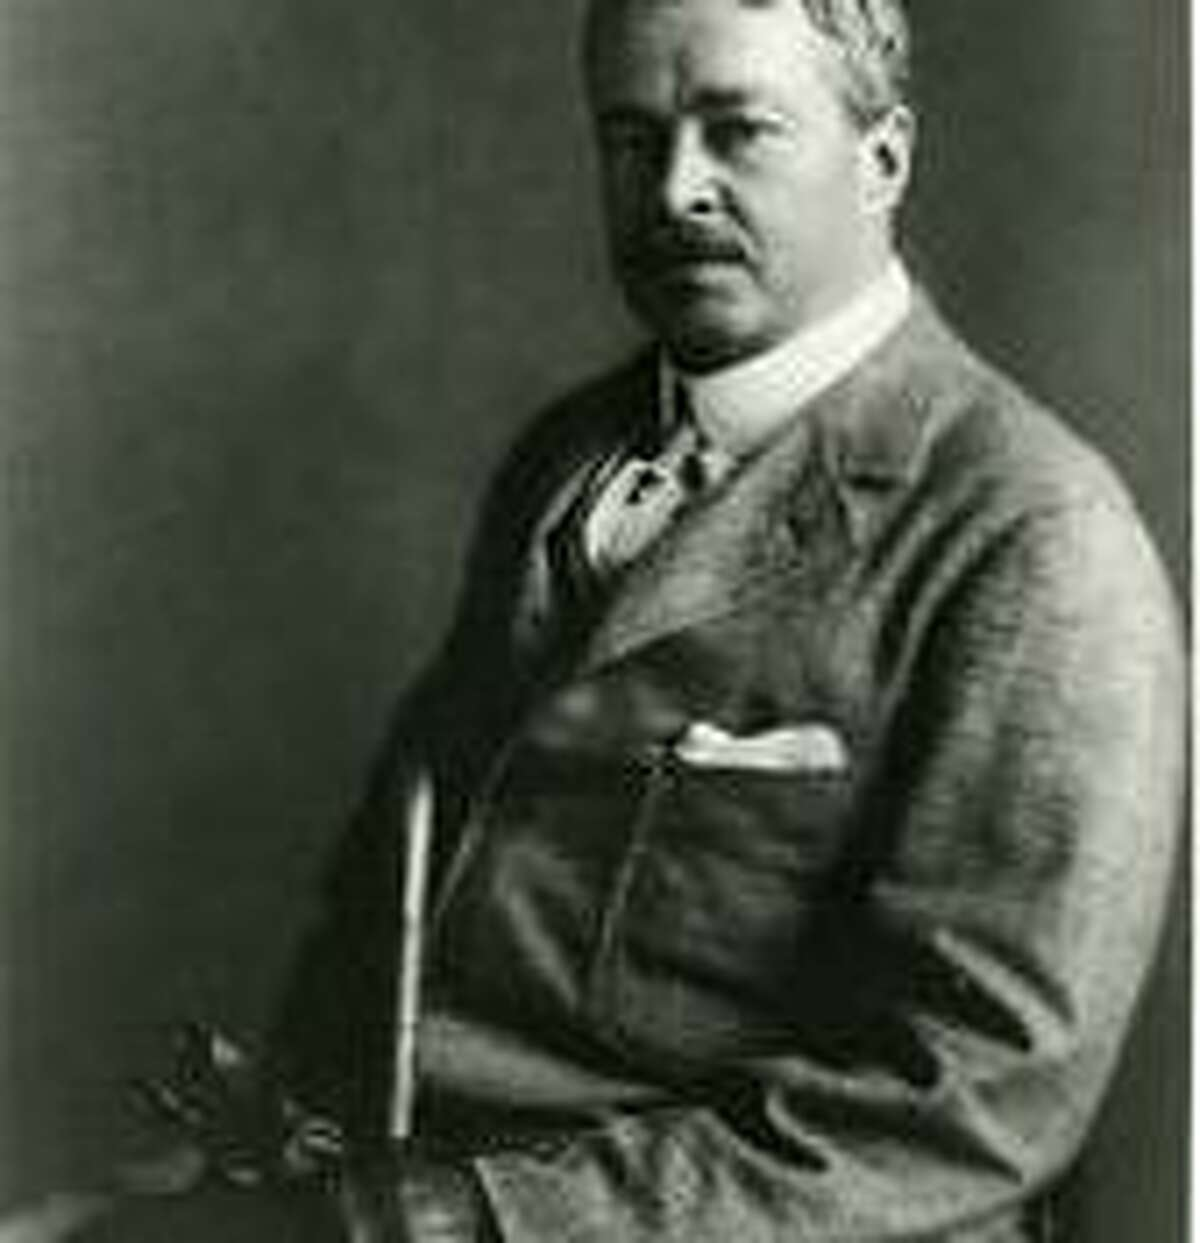 The artist Childe Hassam photographed circa 1908. The photo is part of the Greenwich Historical Society's photograph collection.